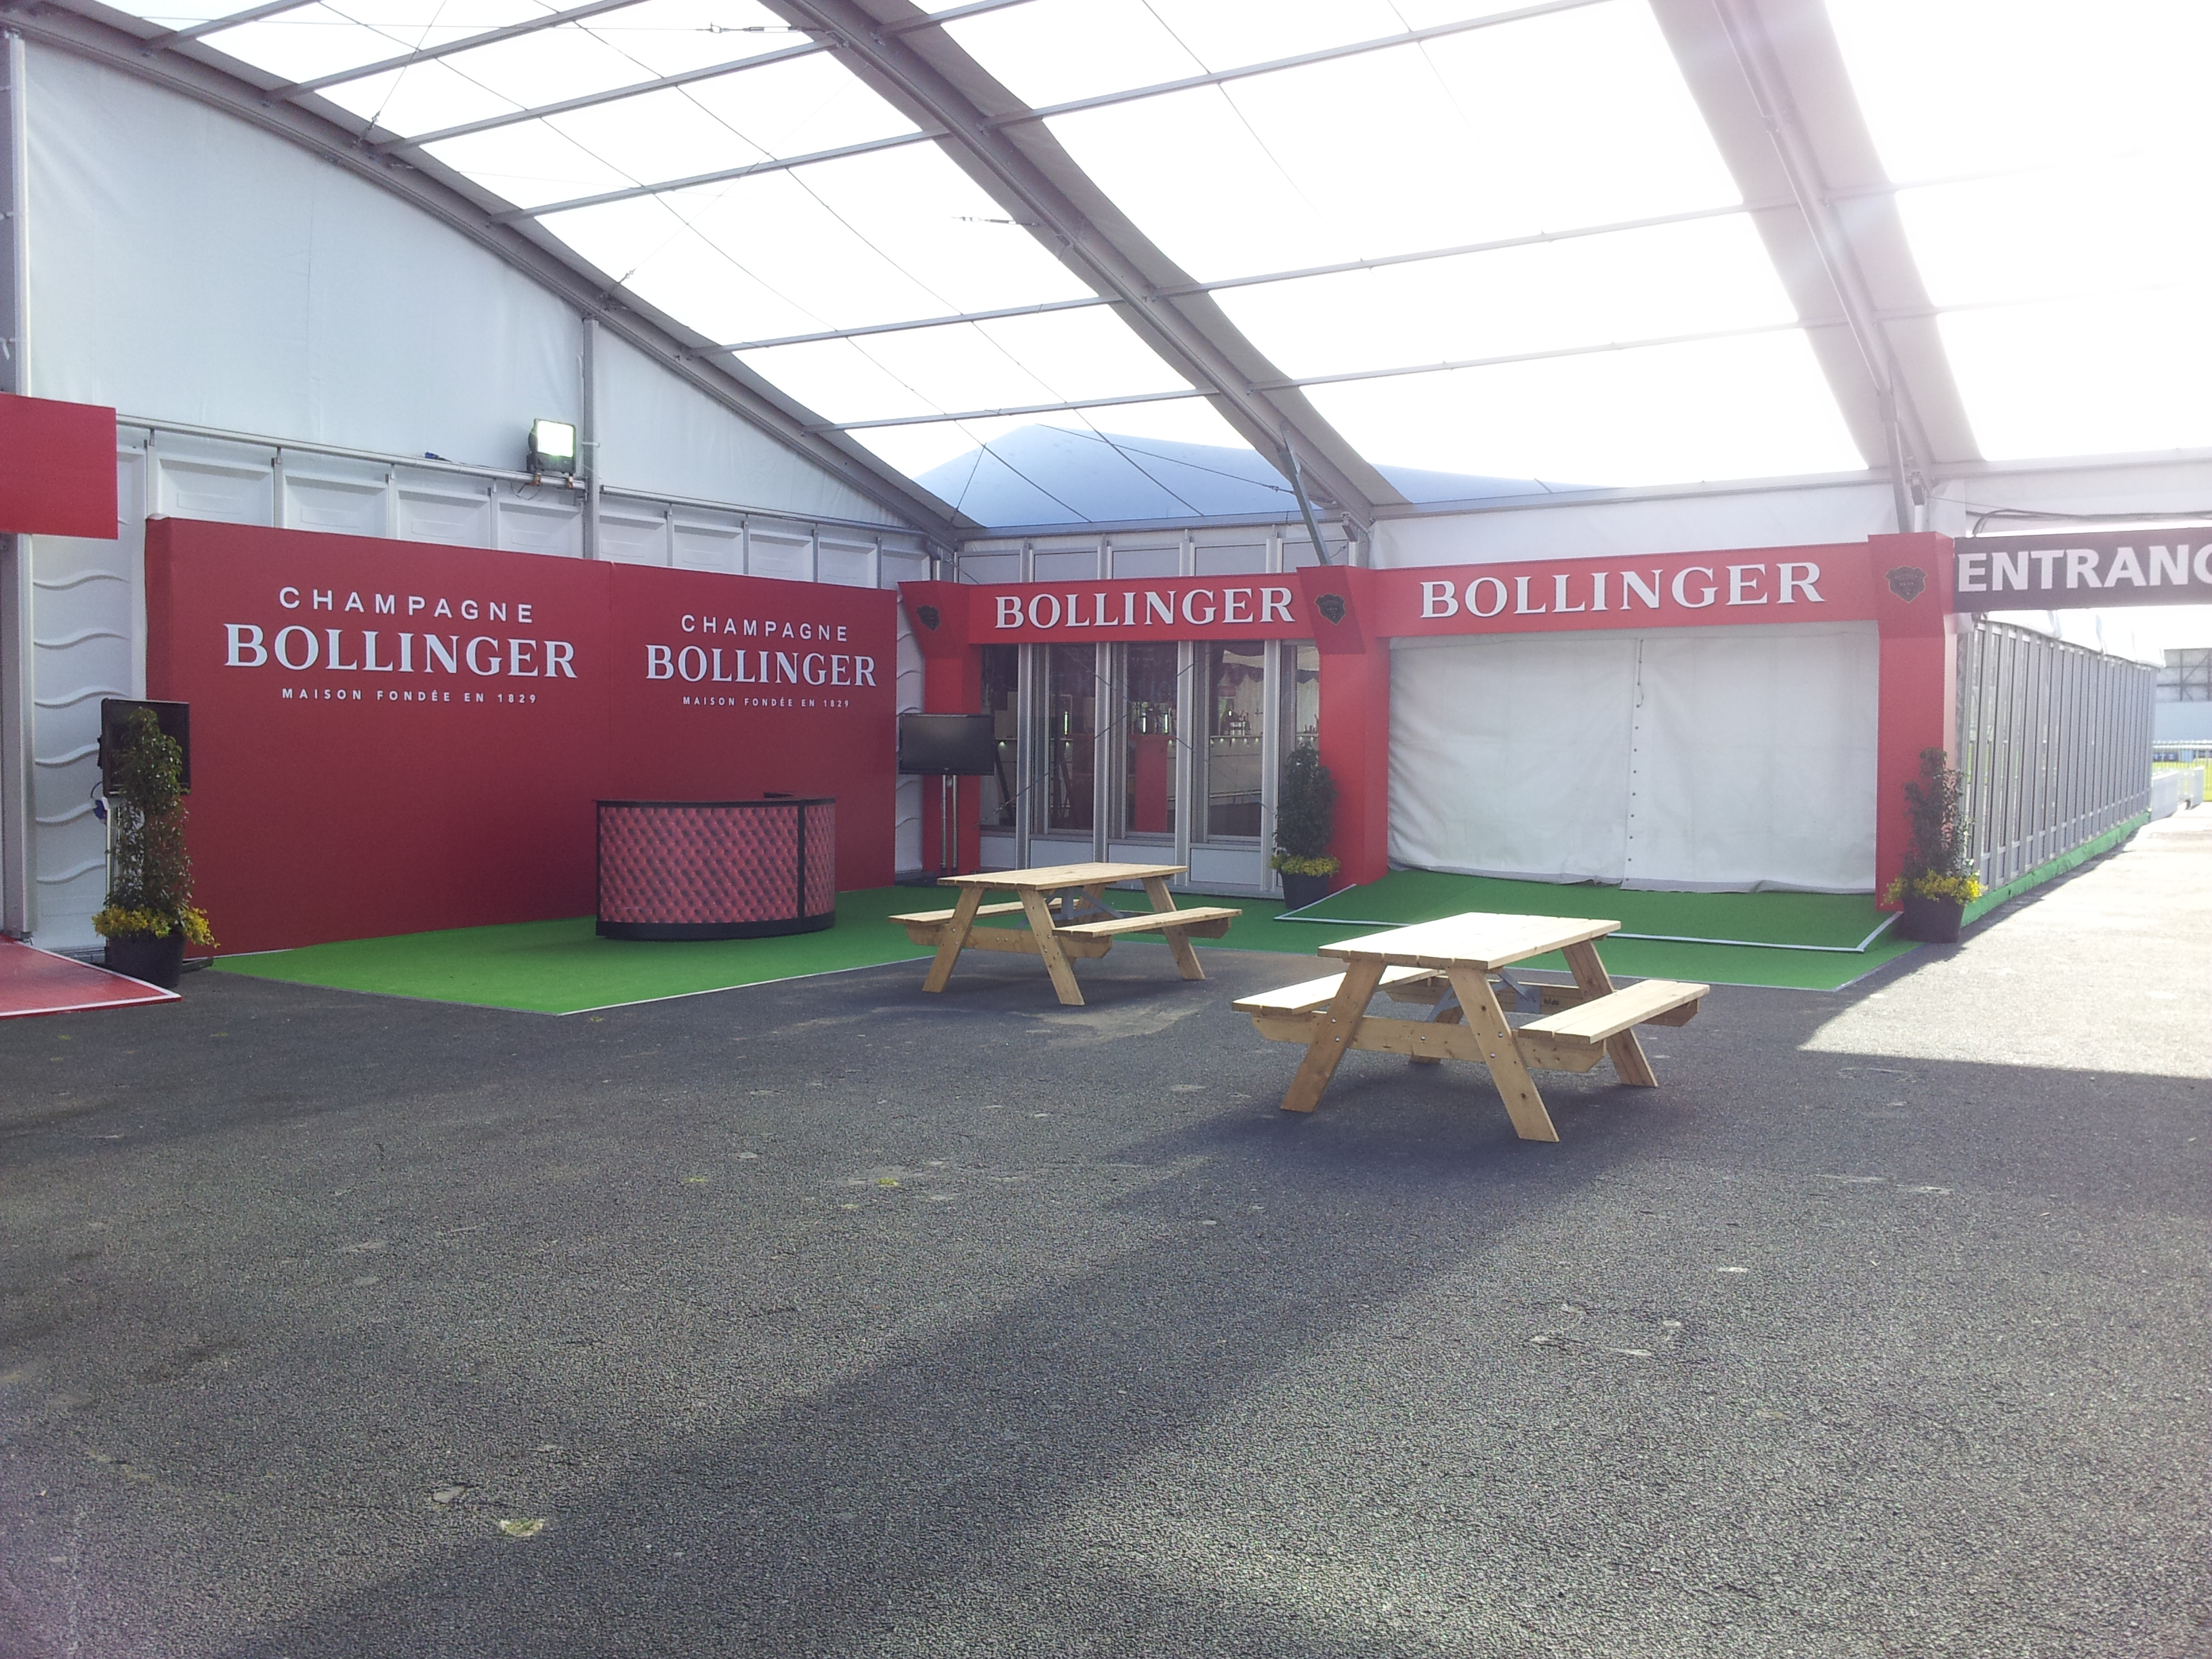 Bollinger Champagne Marquee Entrance at Punchestown